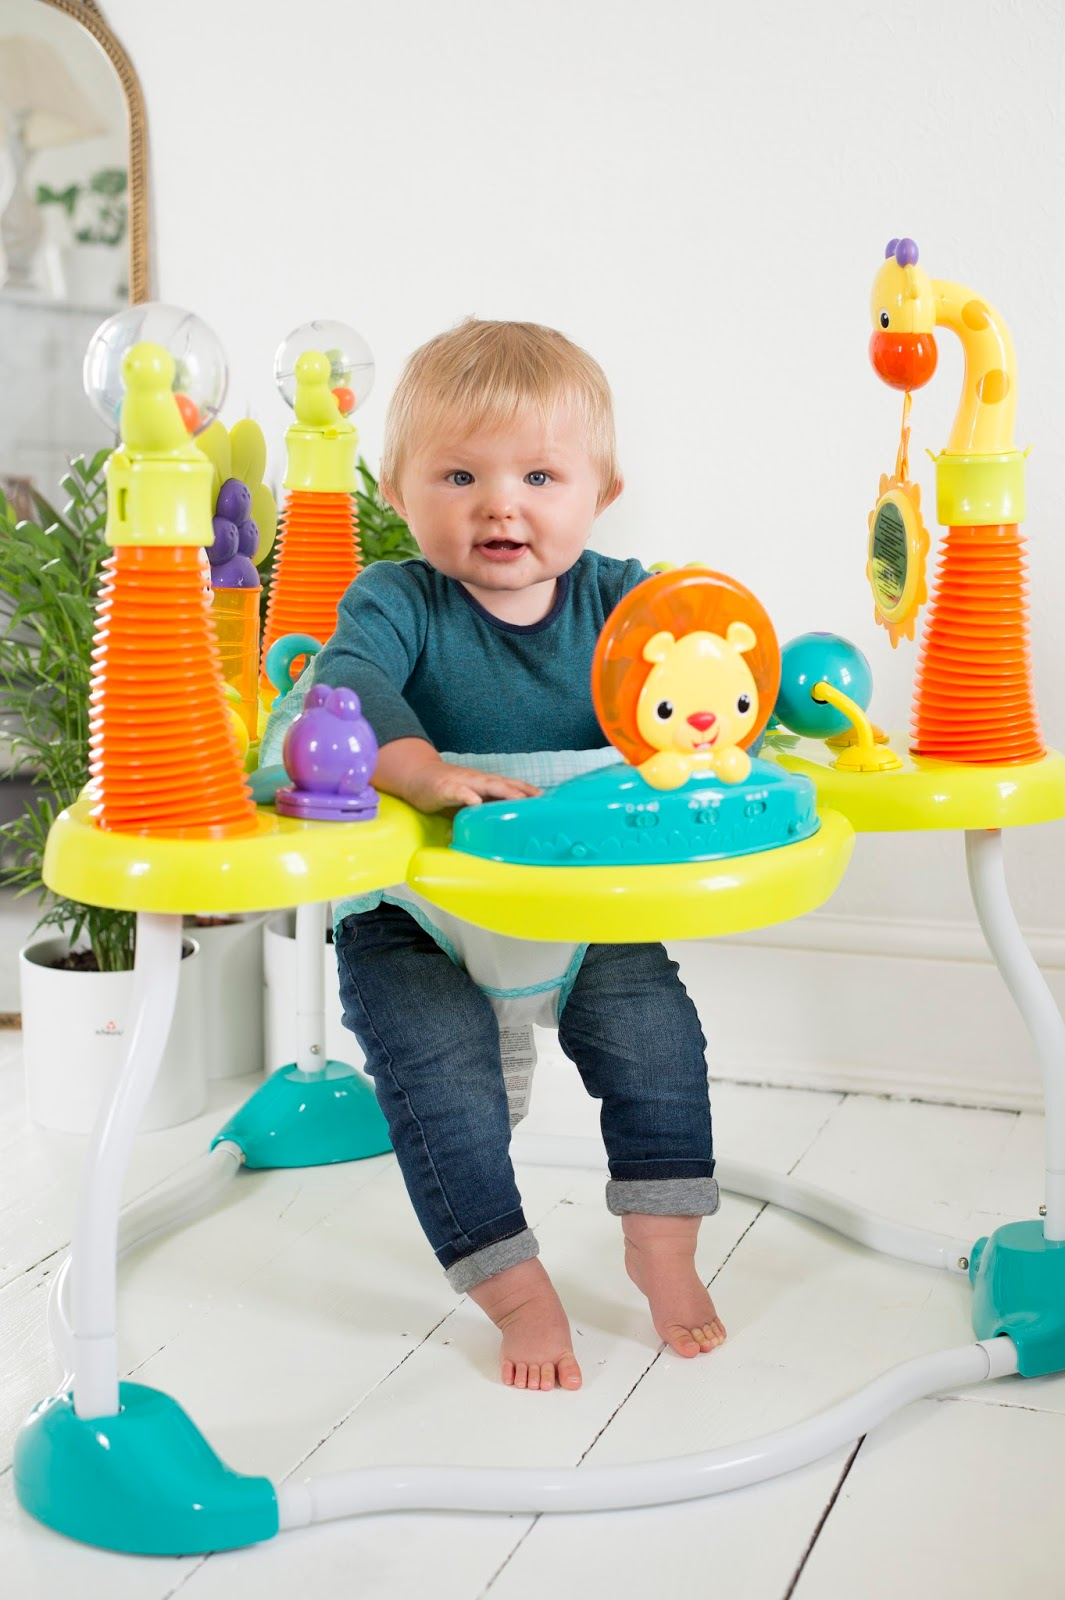 a1119a19f Bright Starts activity jumper in association with Mothercare